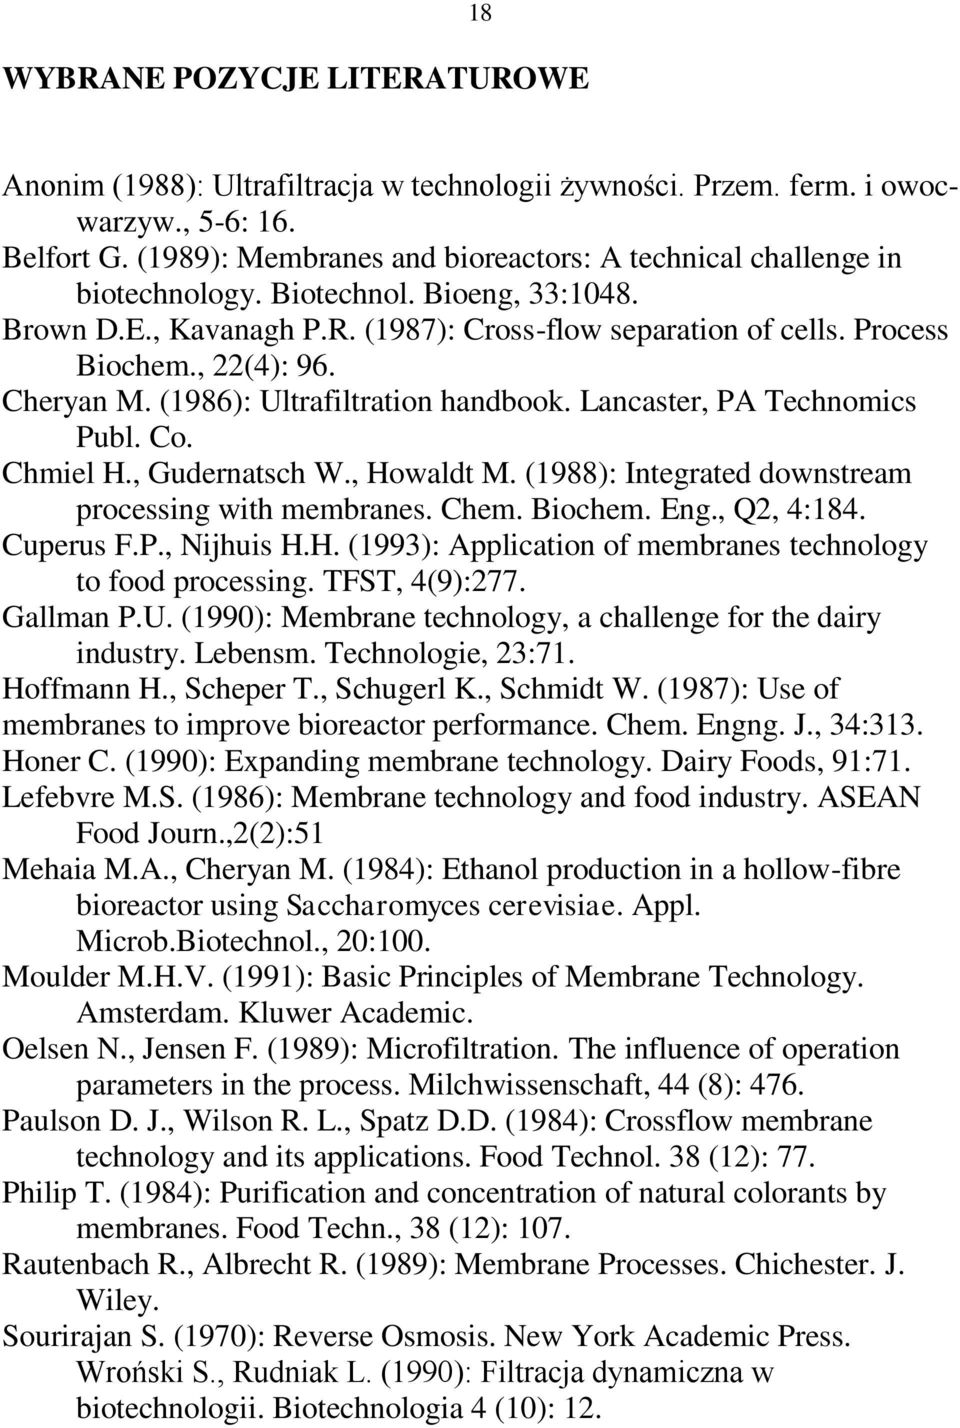 Cheryan M. (1986): Ultrafiltration handbook. Lancaster, PA Technomics Publ. Co. Chmiel H., Gudernatsch W., Howaldt M. (1988): Integrated downstream processing with membranes. Chem. Biochem. Eng.